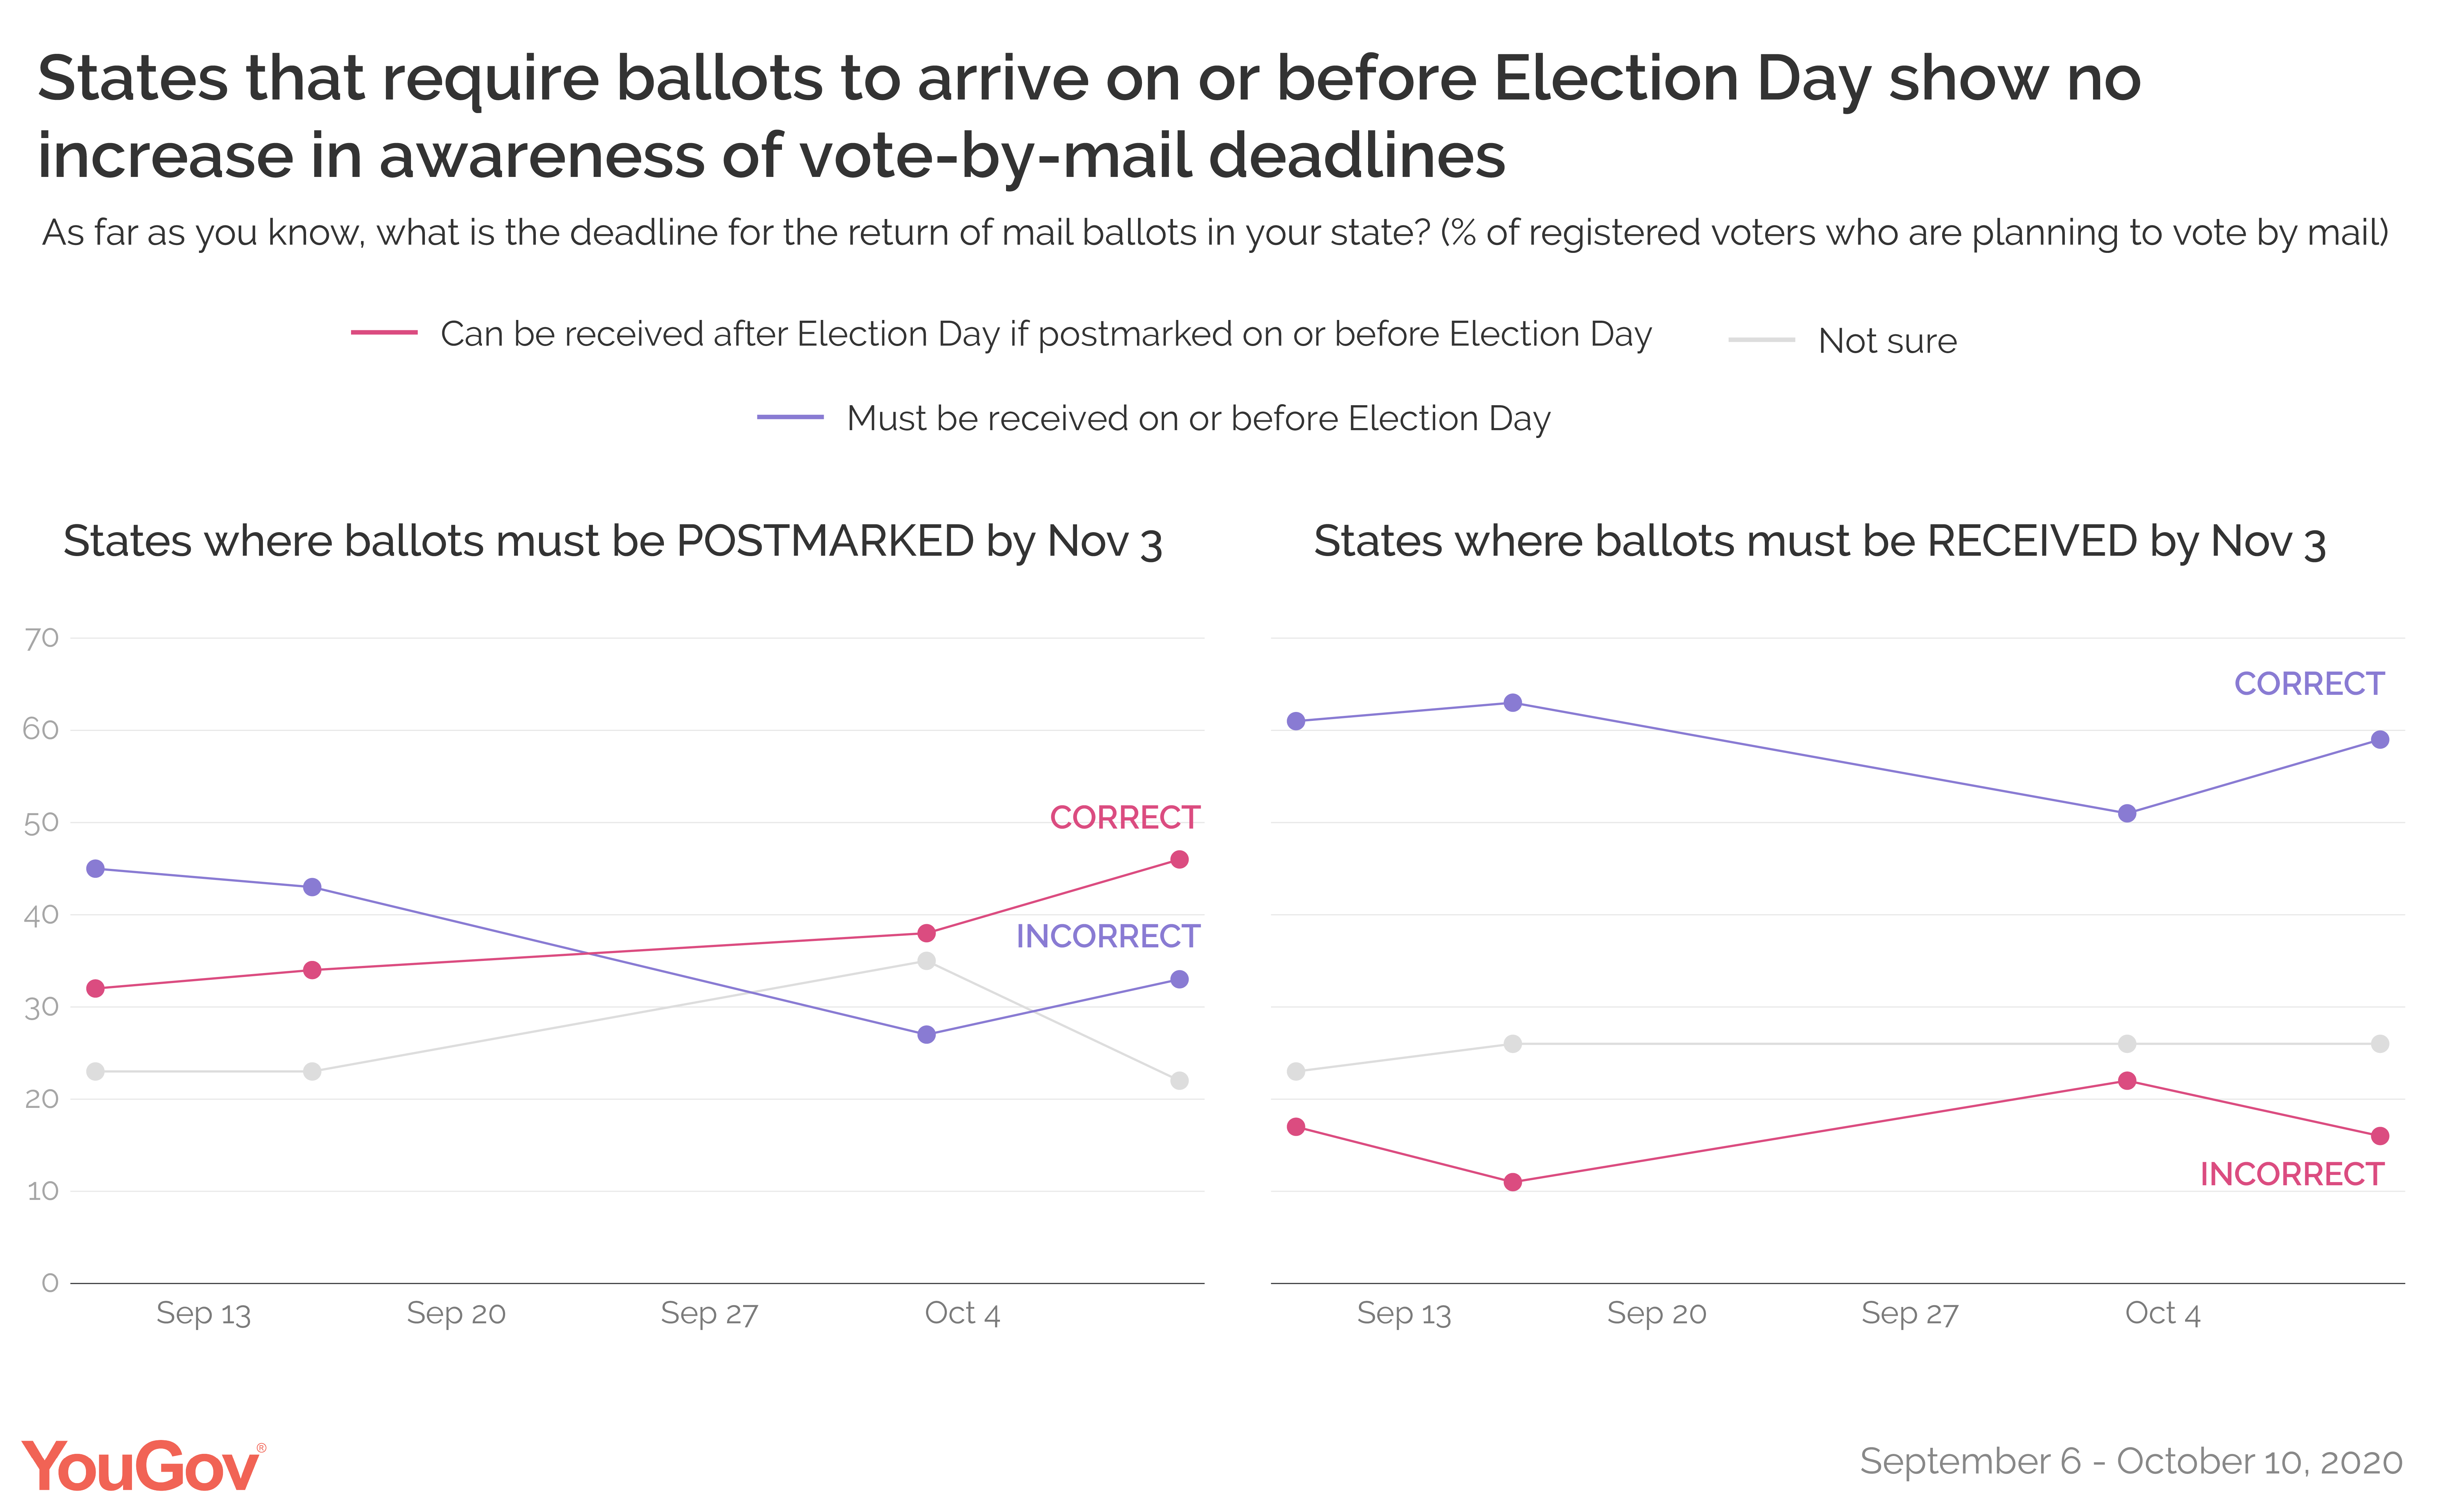 States that require ballots to arrive on or before Election Day show no  increase in awareness of vote-by-mail deadlines